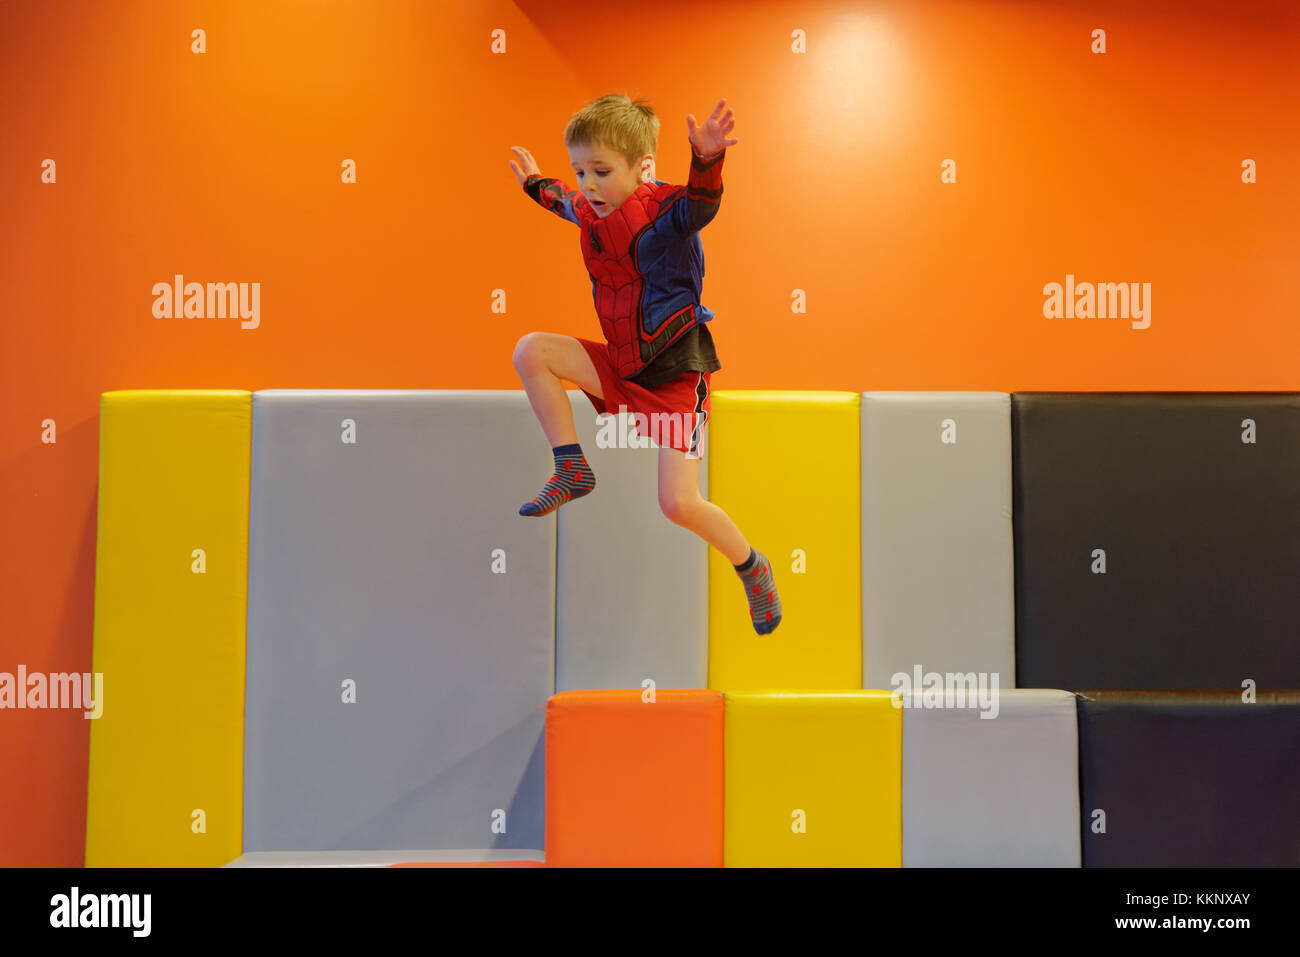 A little boy (5 yrs old) jumping in a padded play area - Stock Image